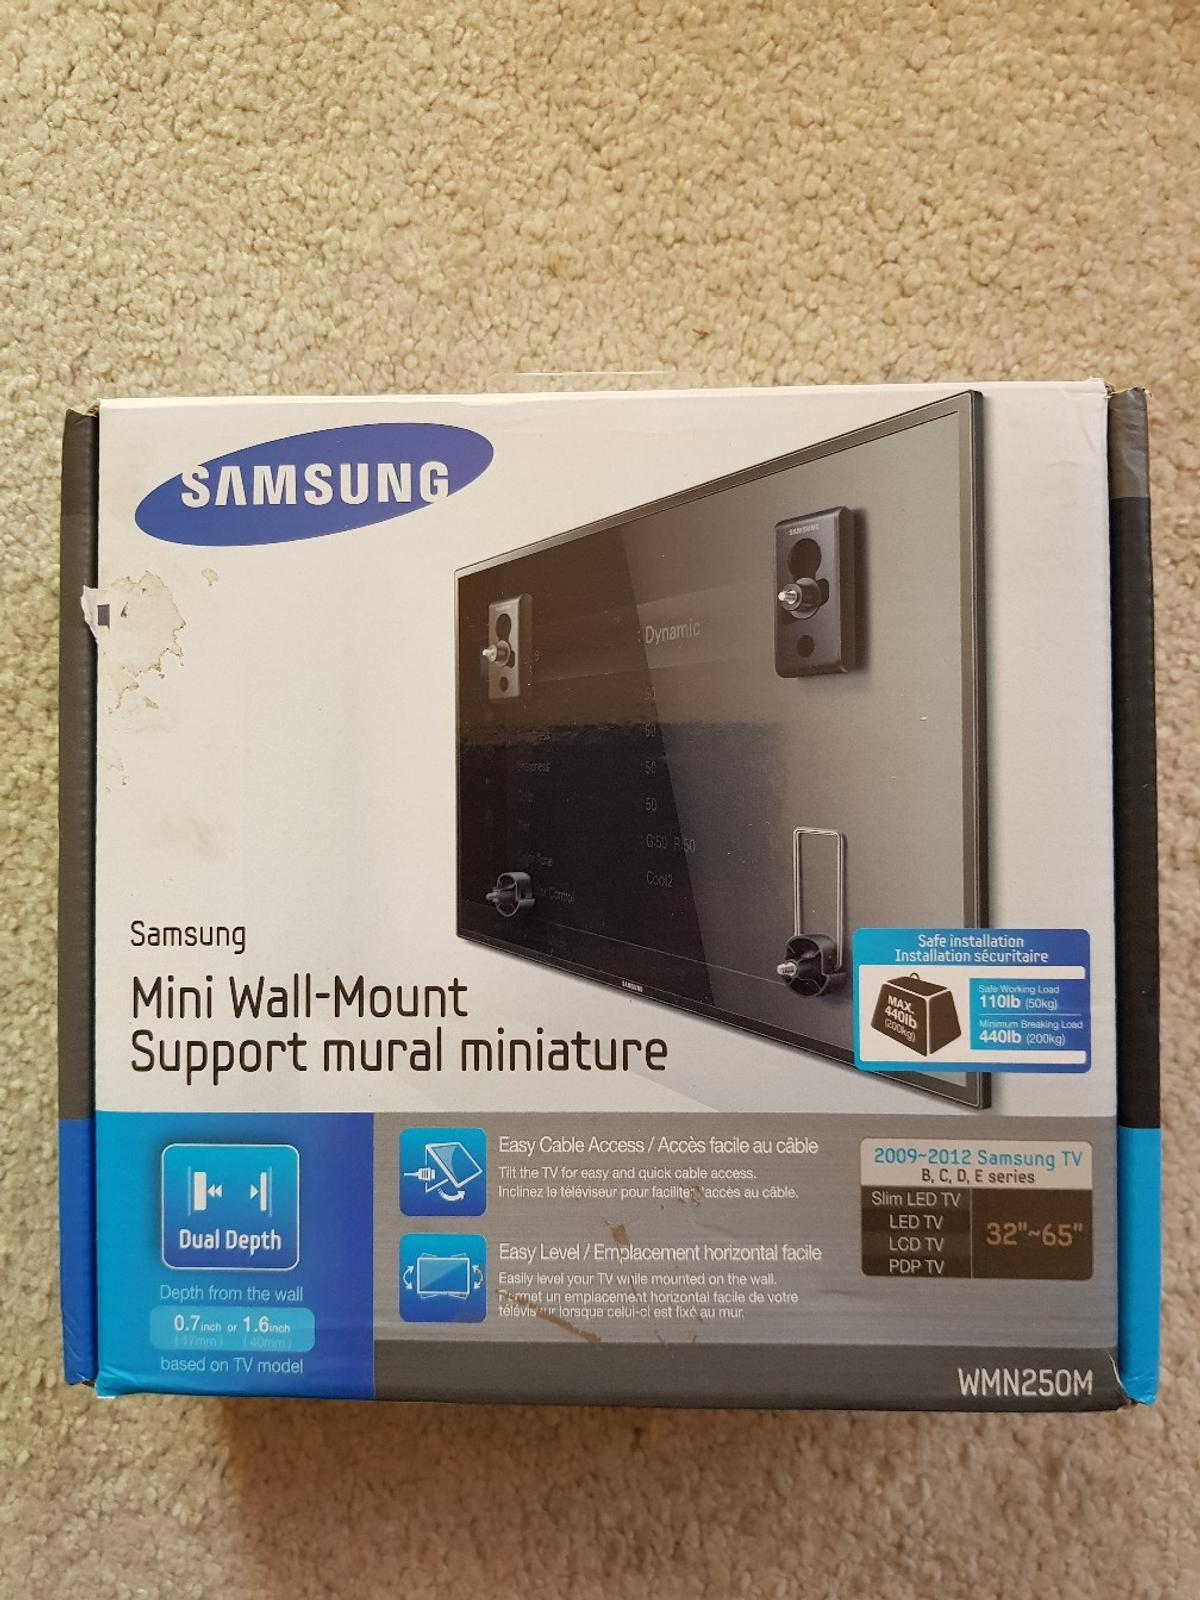 Samsung wall-mount in LE18 Oadby and Wigston for £10 00 for sale